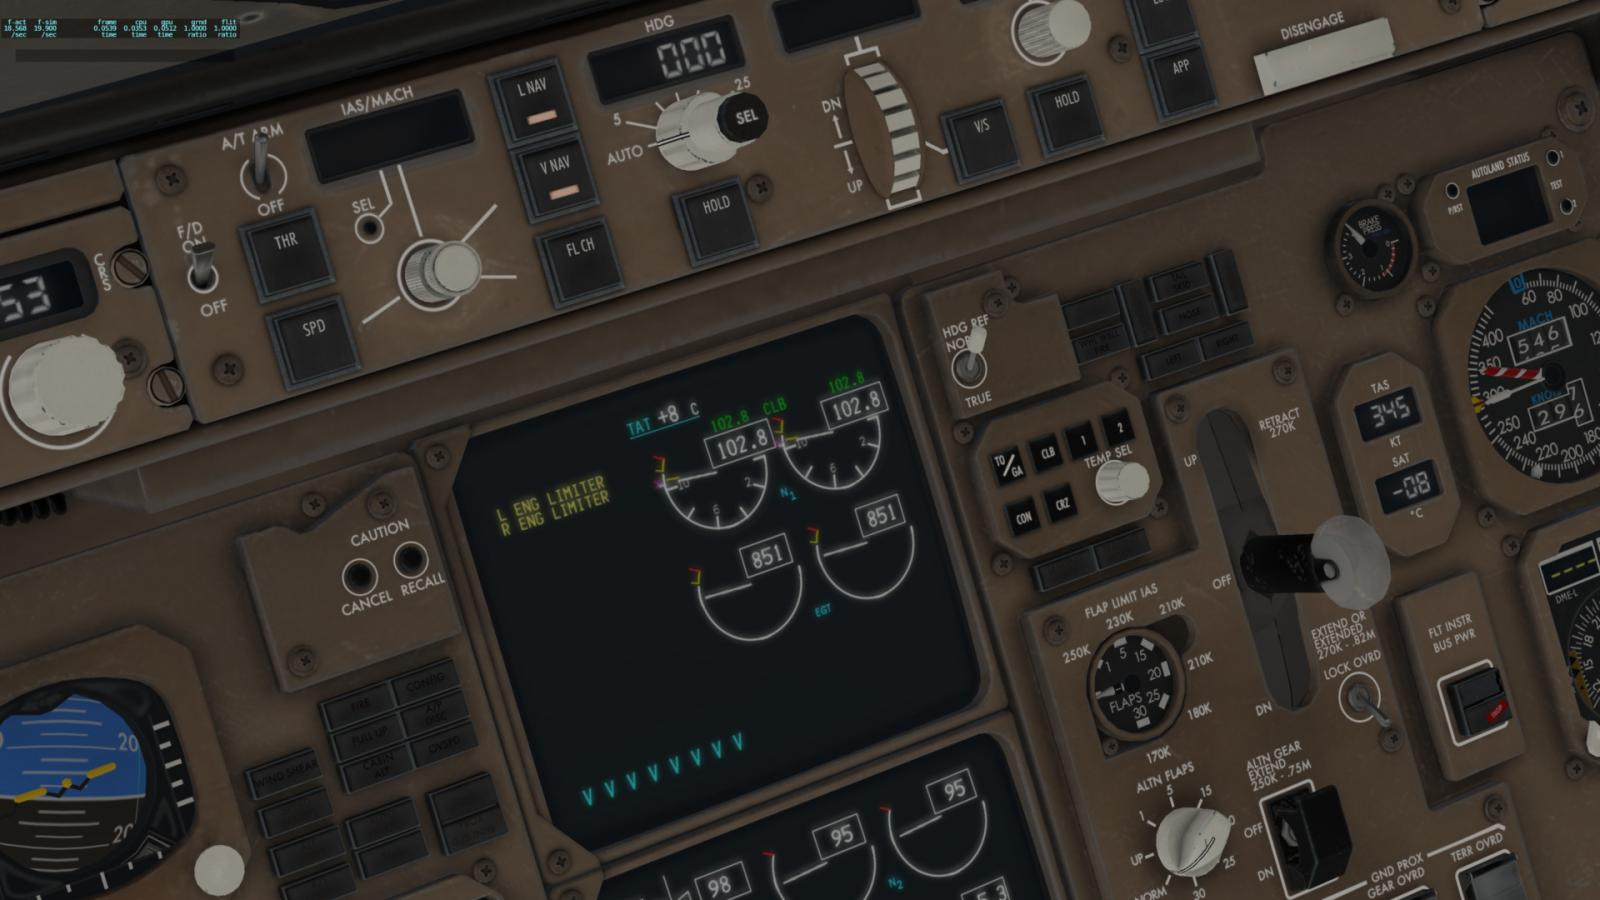 ANSWERED]what is ENG LIMITER? - Boeing 767 Professional - X-Plane